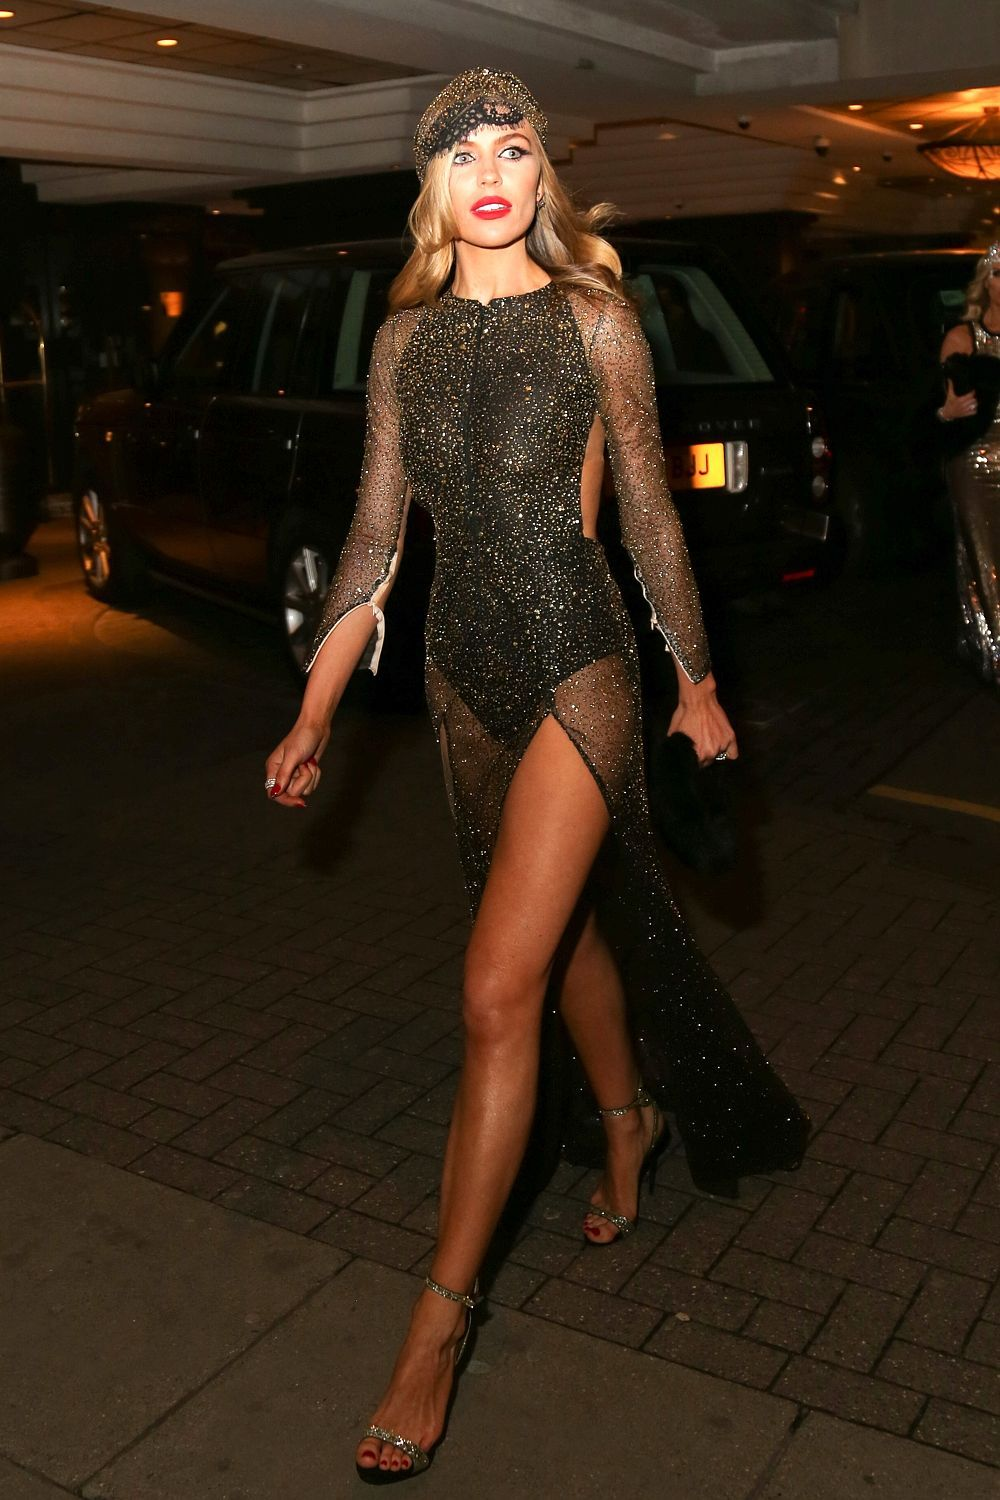 Abbey clancy panty flash and great legs nude (48 photo), Bikini Celebrites pictures